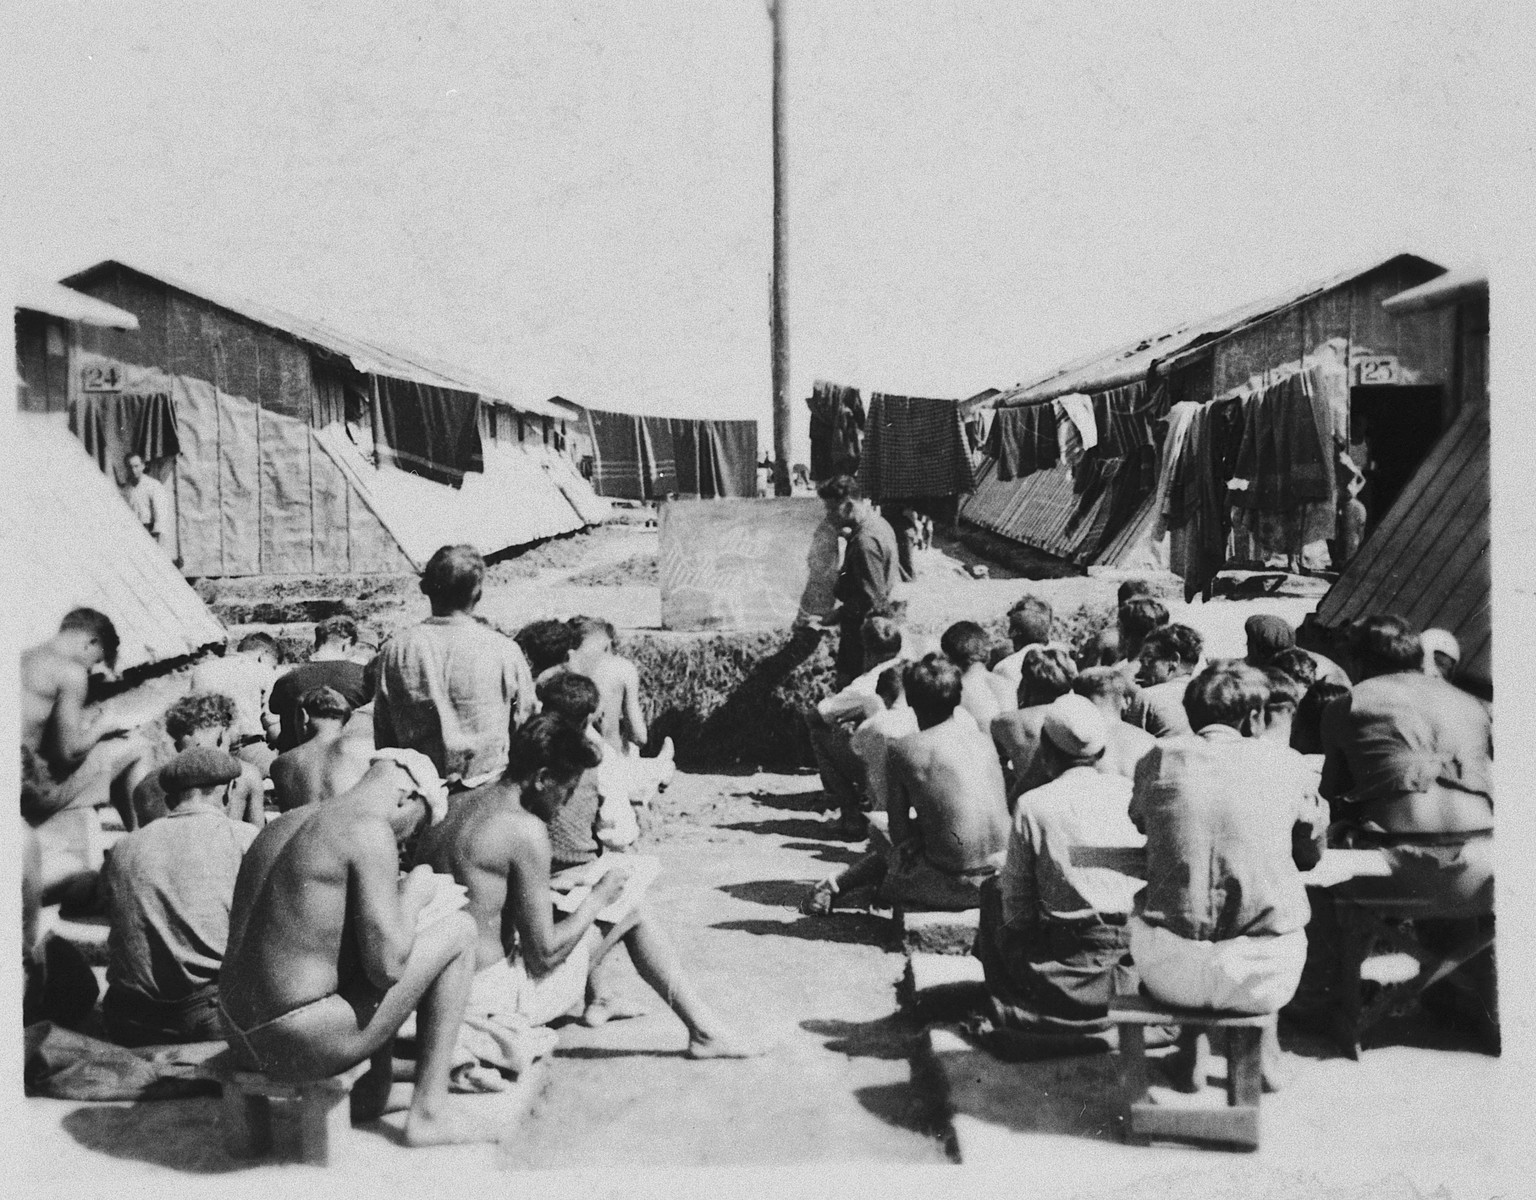 Prisoners gather outside their barracks in the Gurs concentration camp in France.